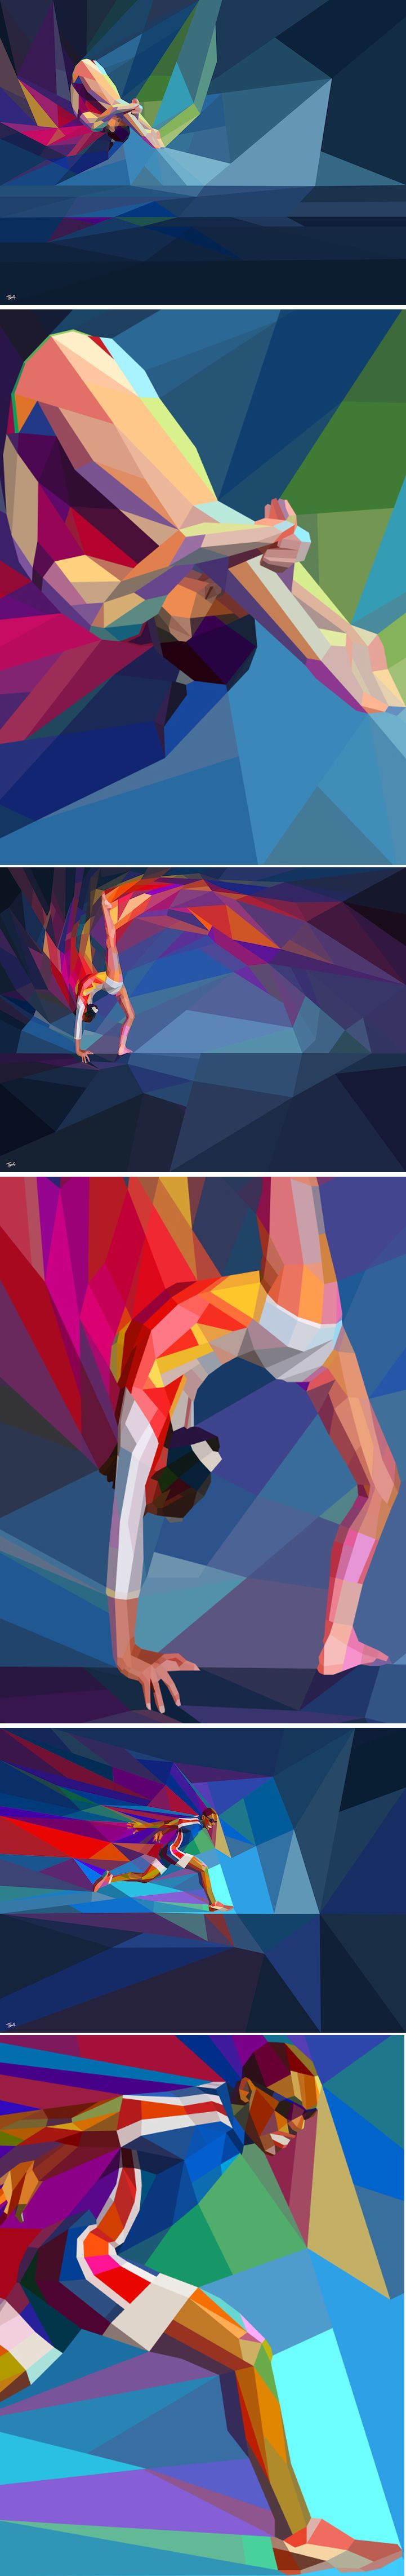 Colorful Geometric Illustrations of London 2012 Olympics - notice the heat behind the athletes